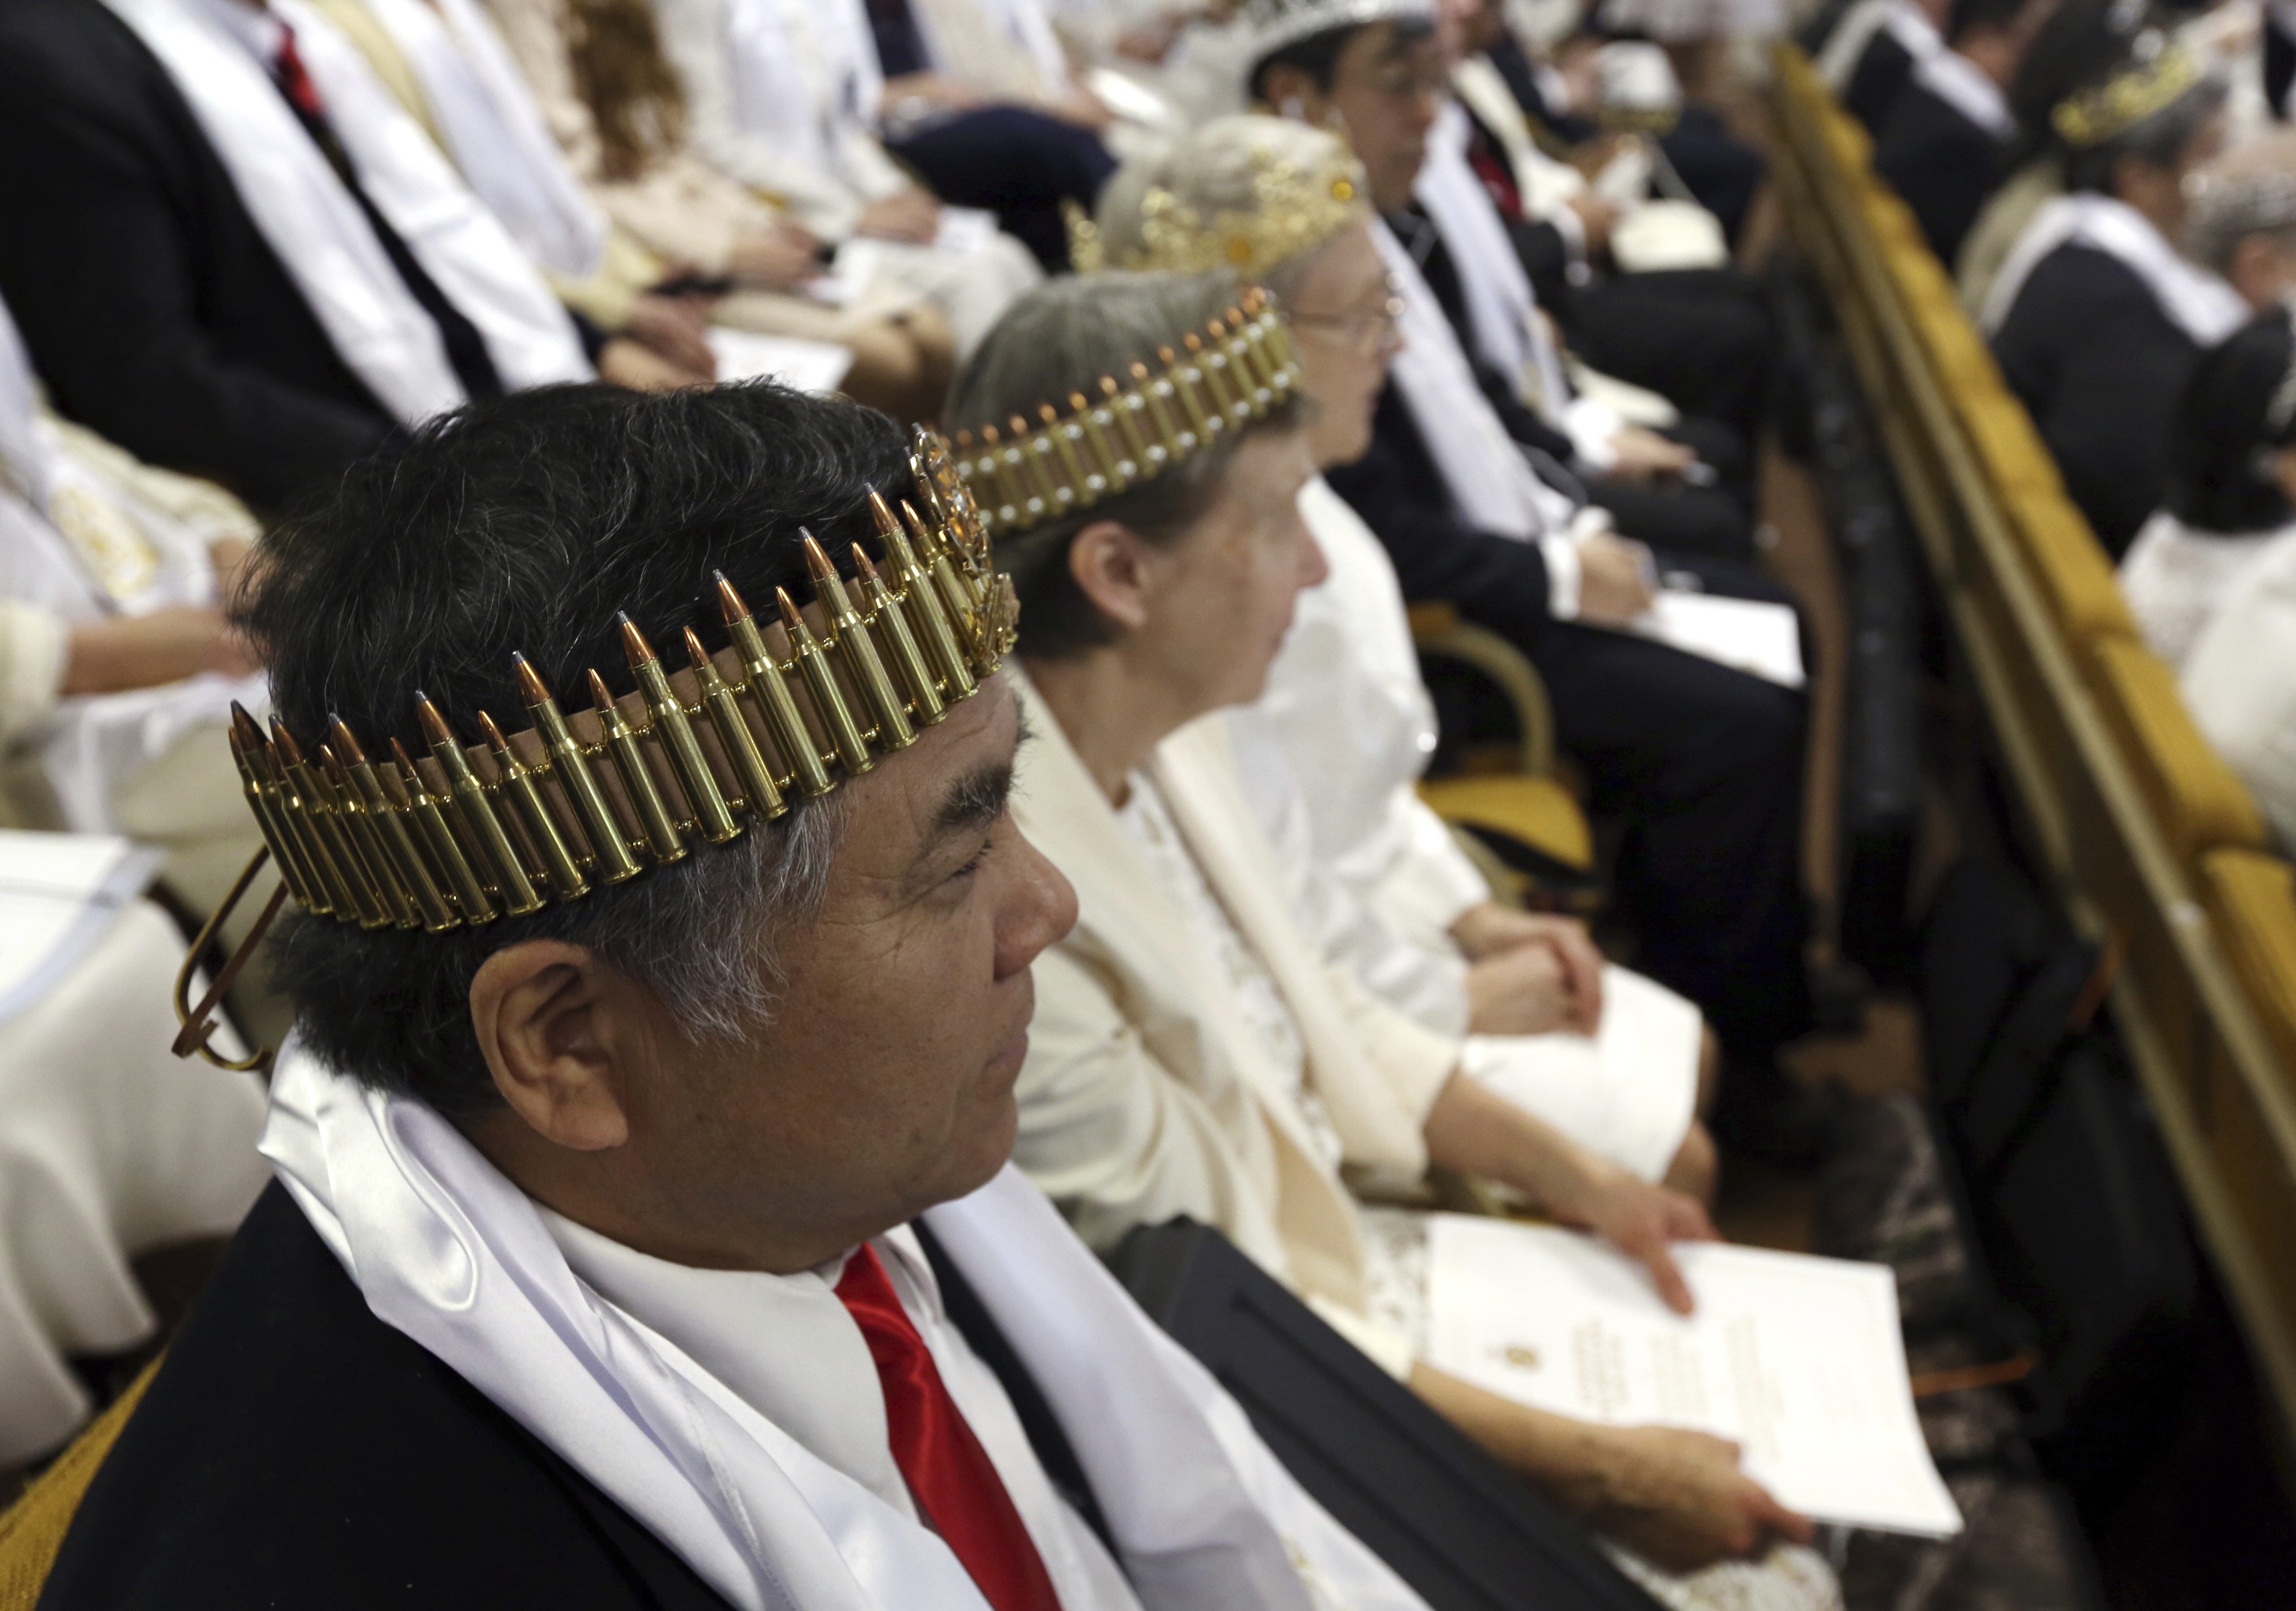 A man wears a crown of bullets at the ceremony (Jacqueline Larma/AP)